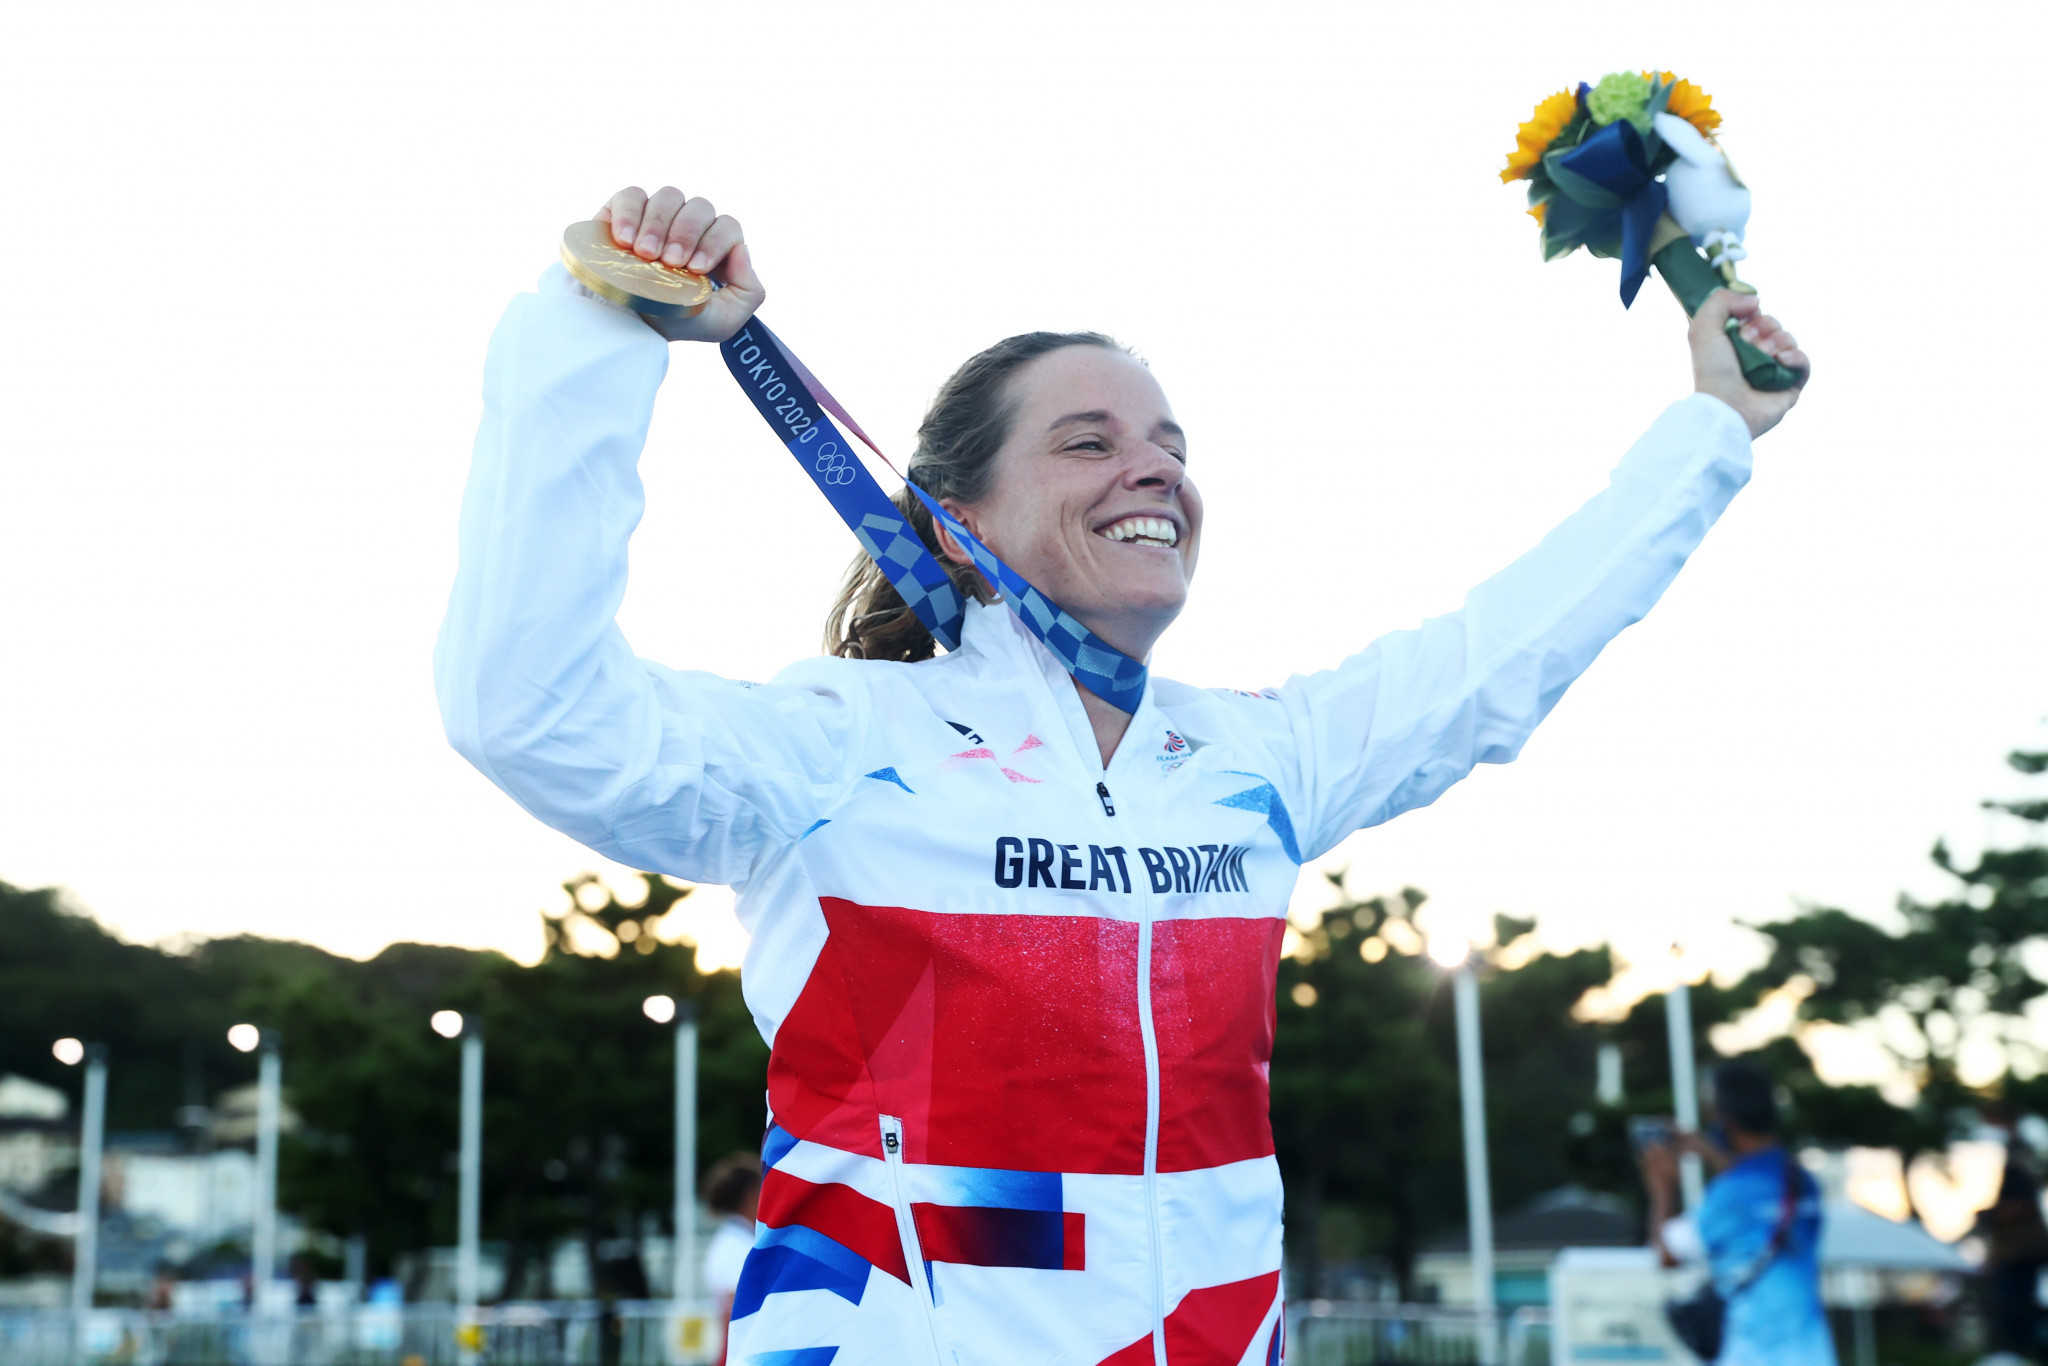 Double Olympic champion Hannah Mills described the introduction of a women's event at the America's Cup as